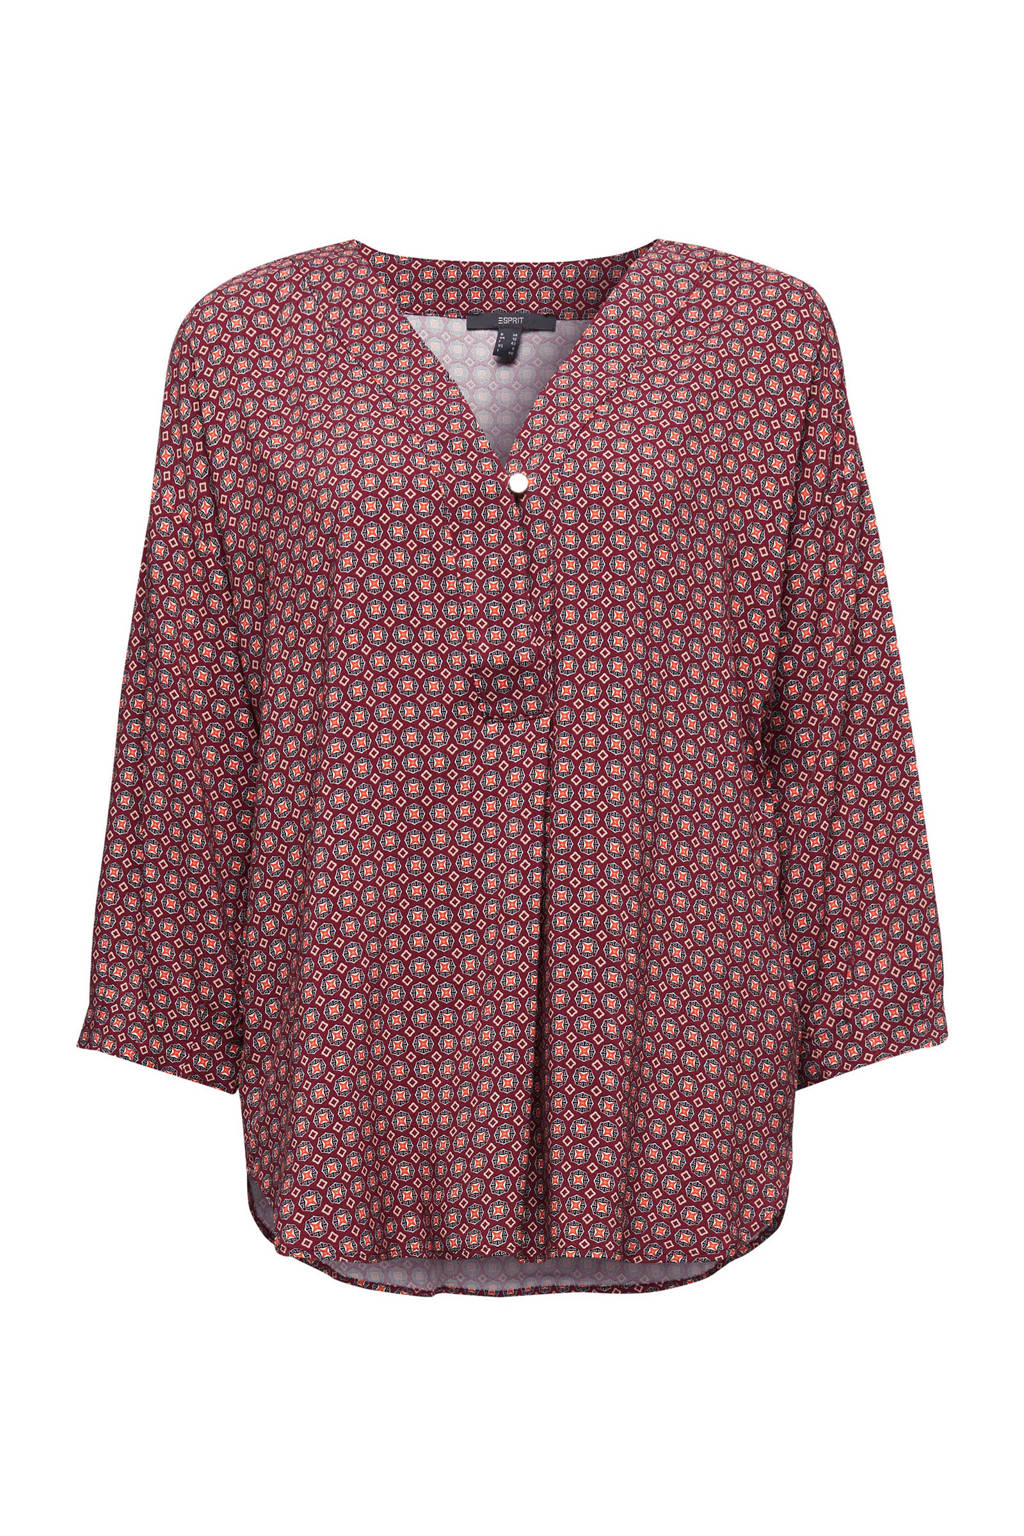 ESPRIT Women Collection blouse met all over print donkerrood/rood/zwart, Donkerrood/rood/zwart